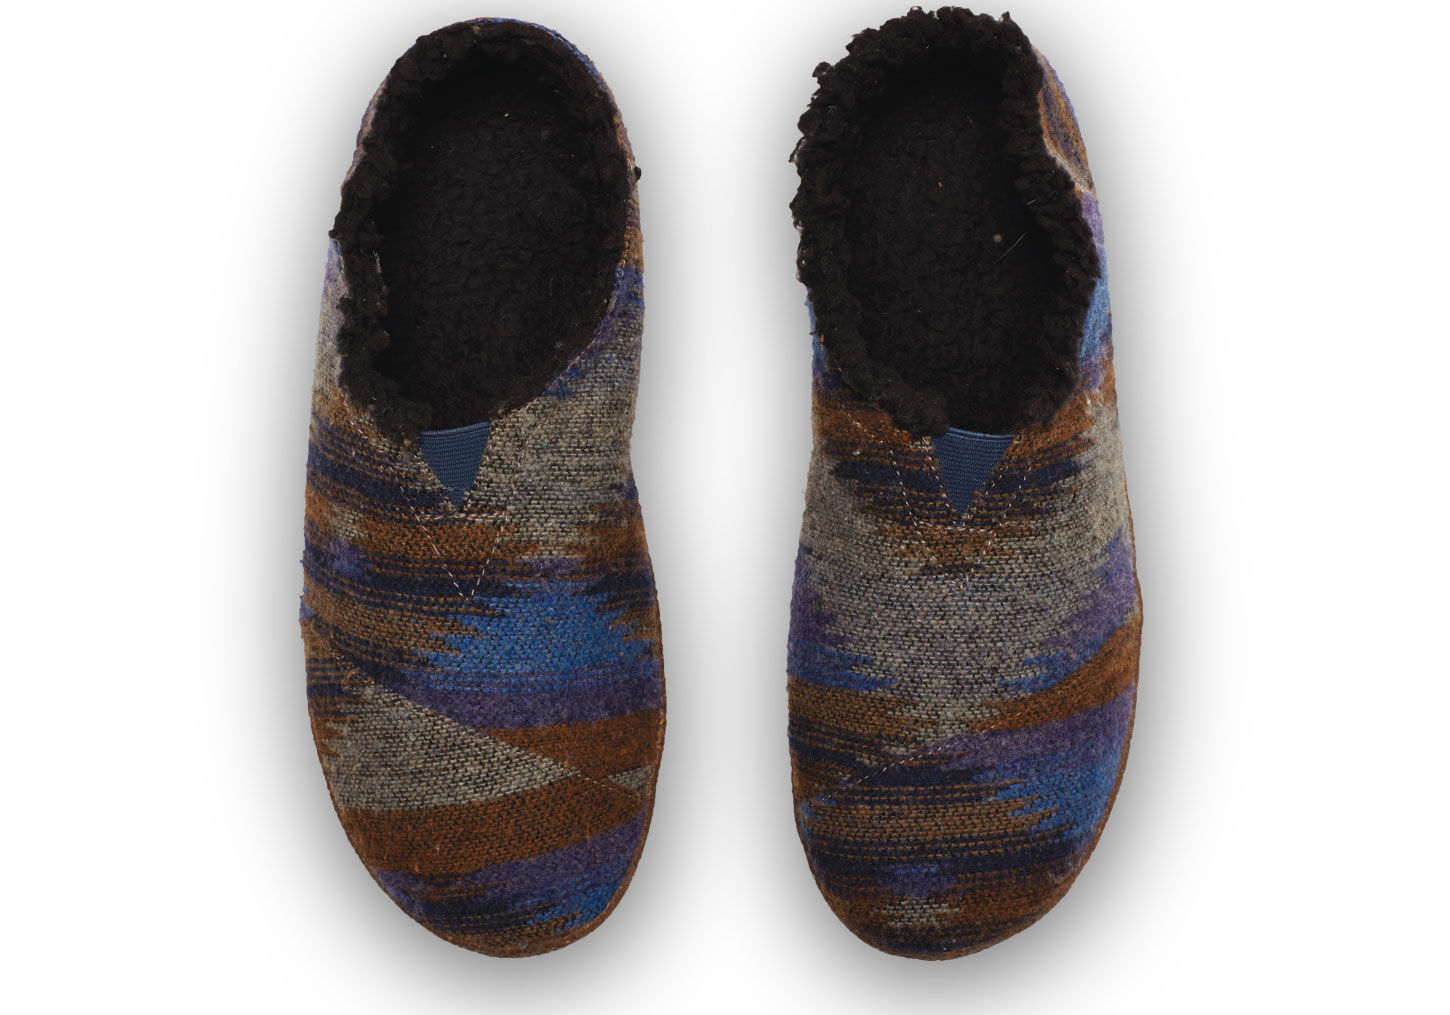 Lyst - Toms Blue Wool Menu0026#39;s Slippers In Blue For Men